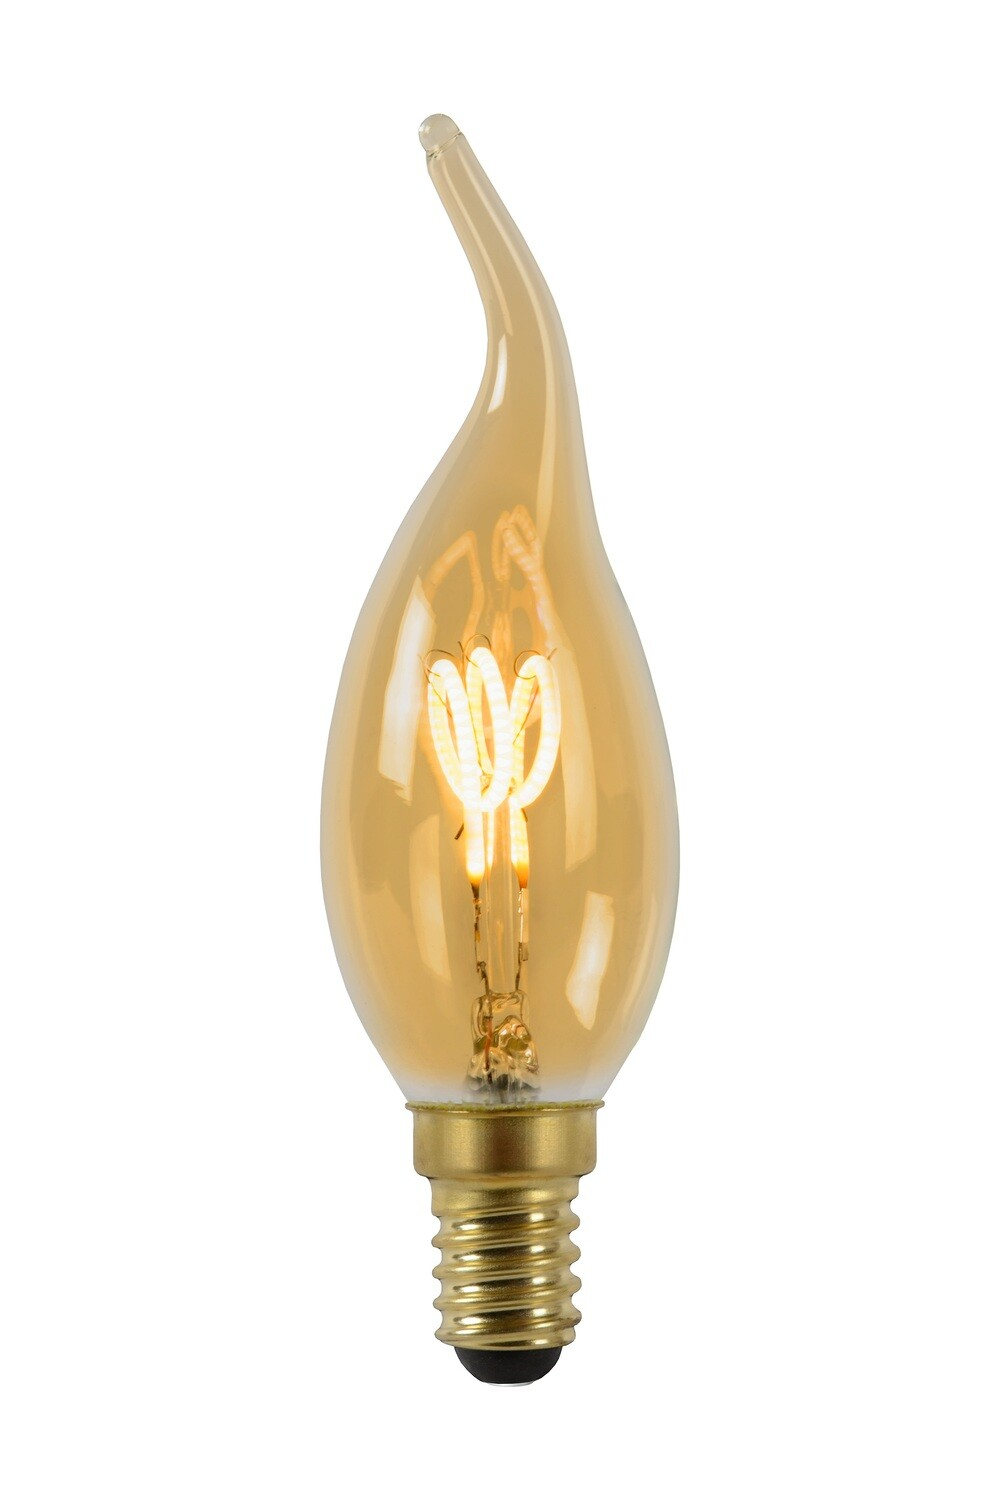 E14-LED filament-candletip 3 Watt 2200K  115lm Amber Finish DIMMABLE